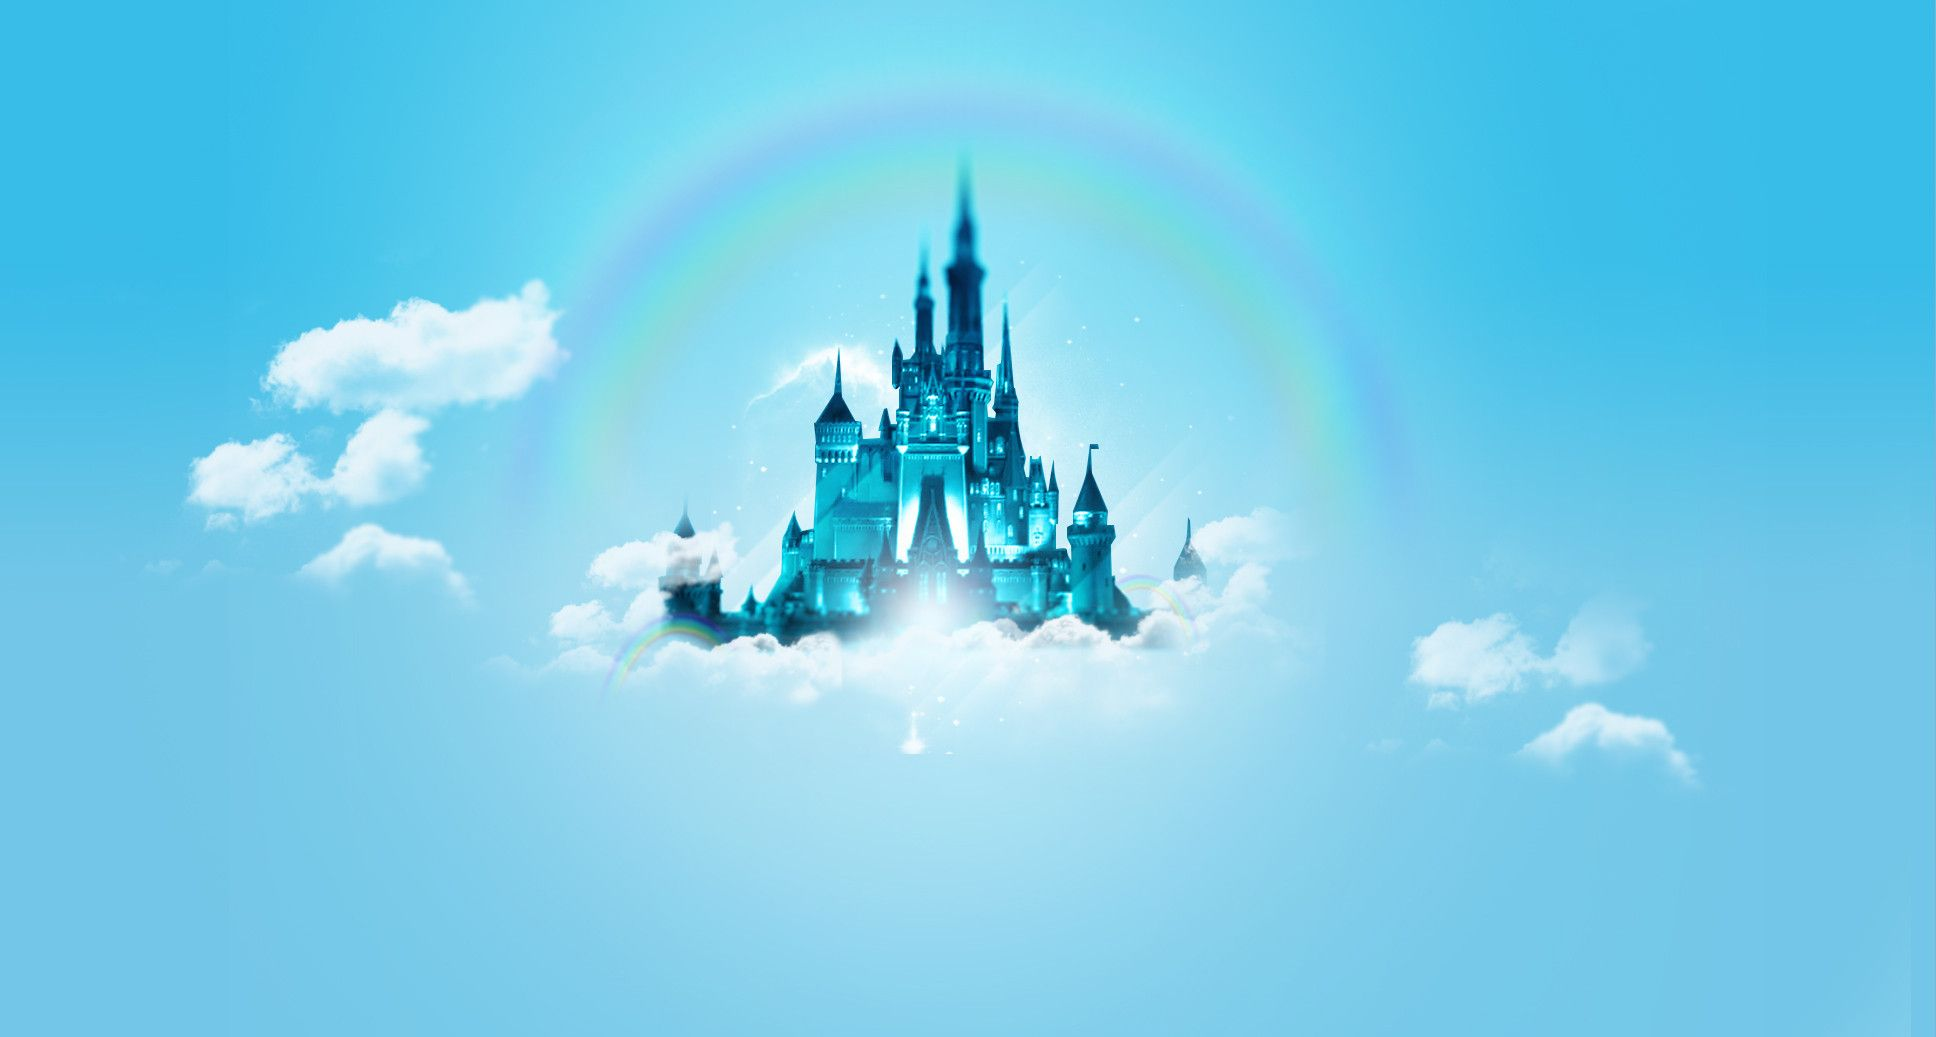 Disney Wallpaper Hd Sf Wallpaper